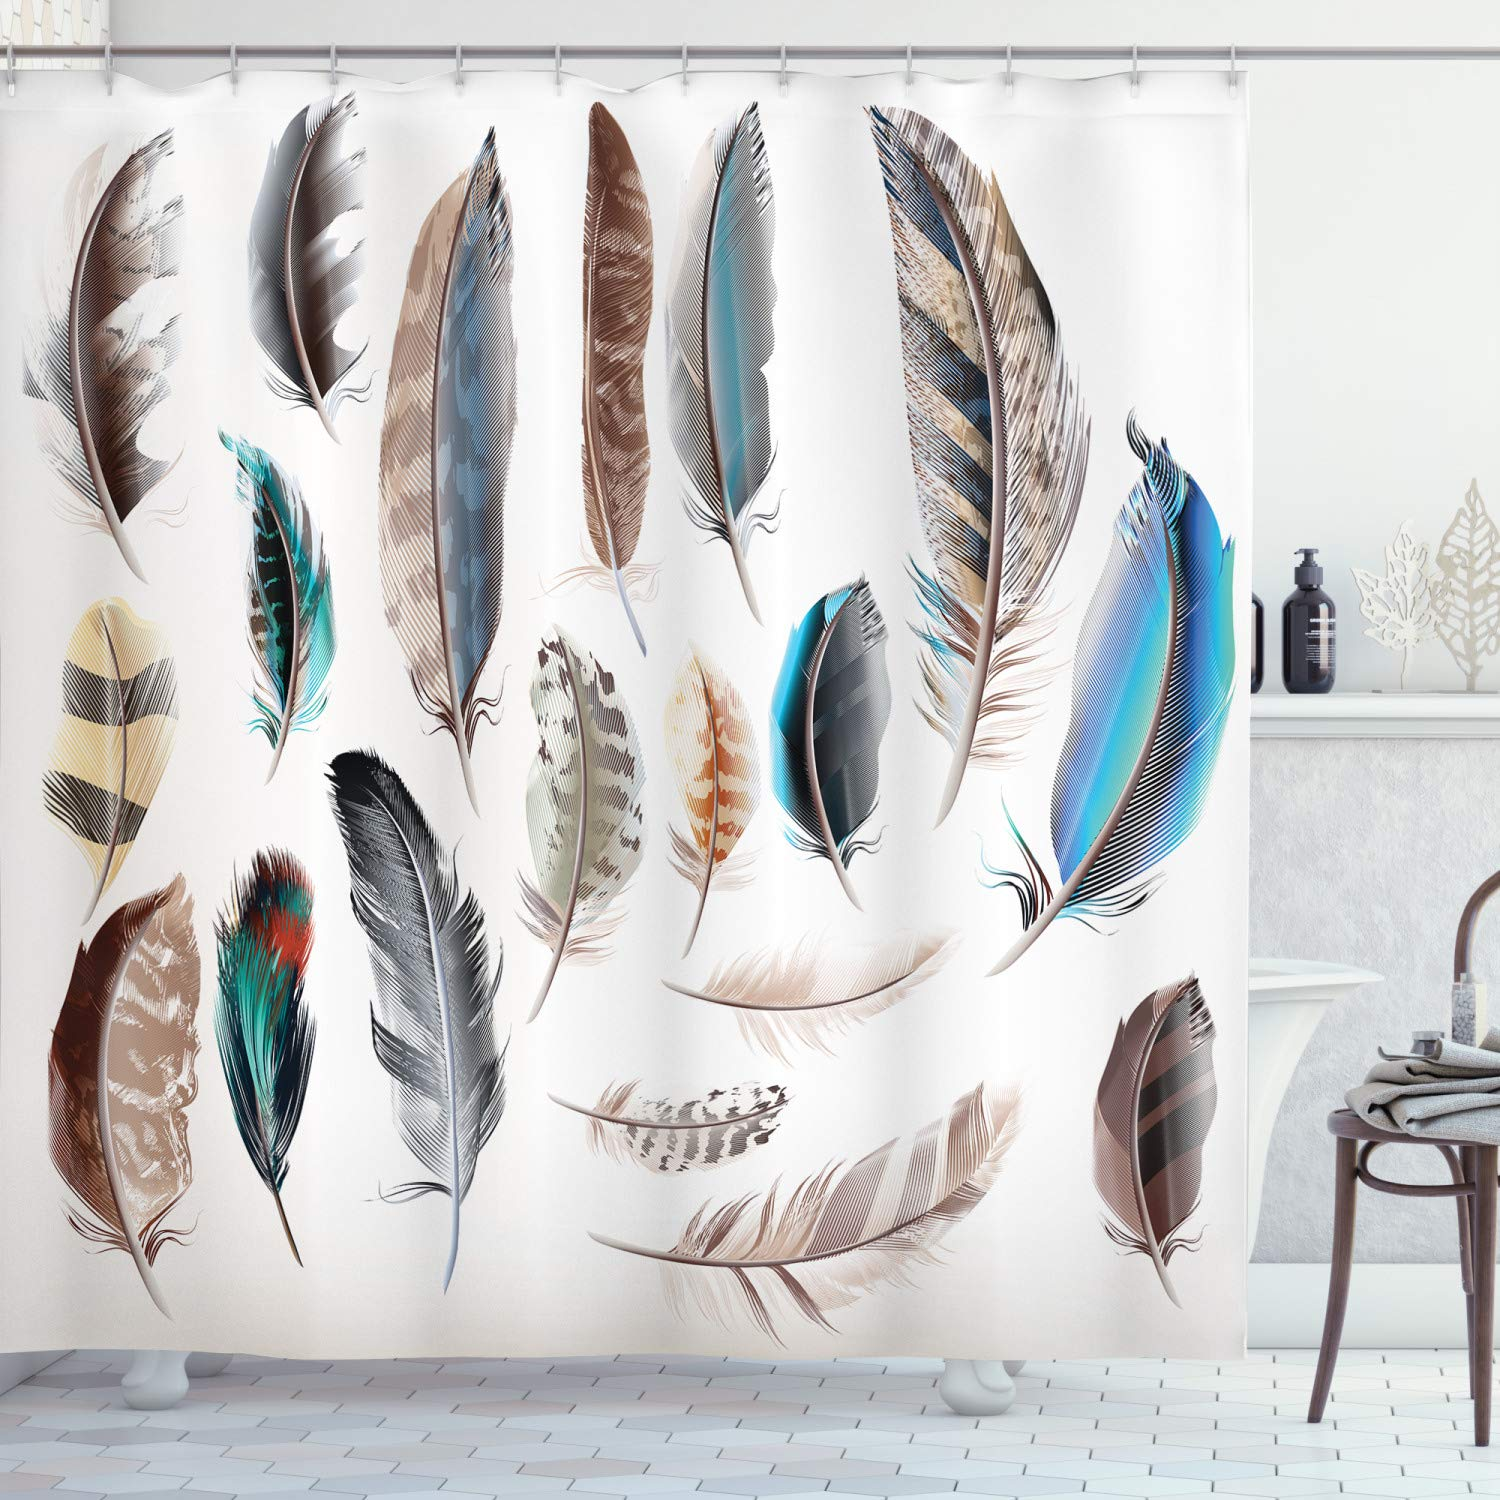 """Ambesonne Feathers Shower Curtain, Western Feather Setting Pigmented Bird Body Parts Growth Nature Design, Cloth Fabric Bathroom Decor Set with Hooks, 75"""" Long, White Brown"""